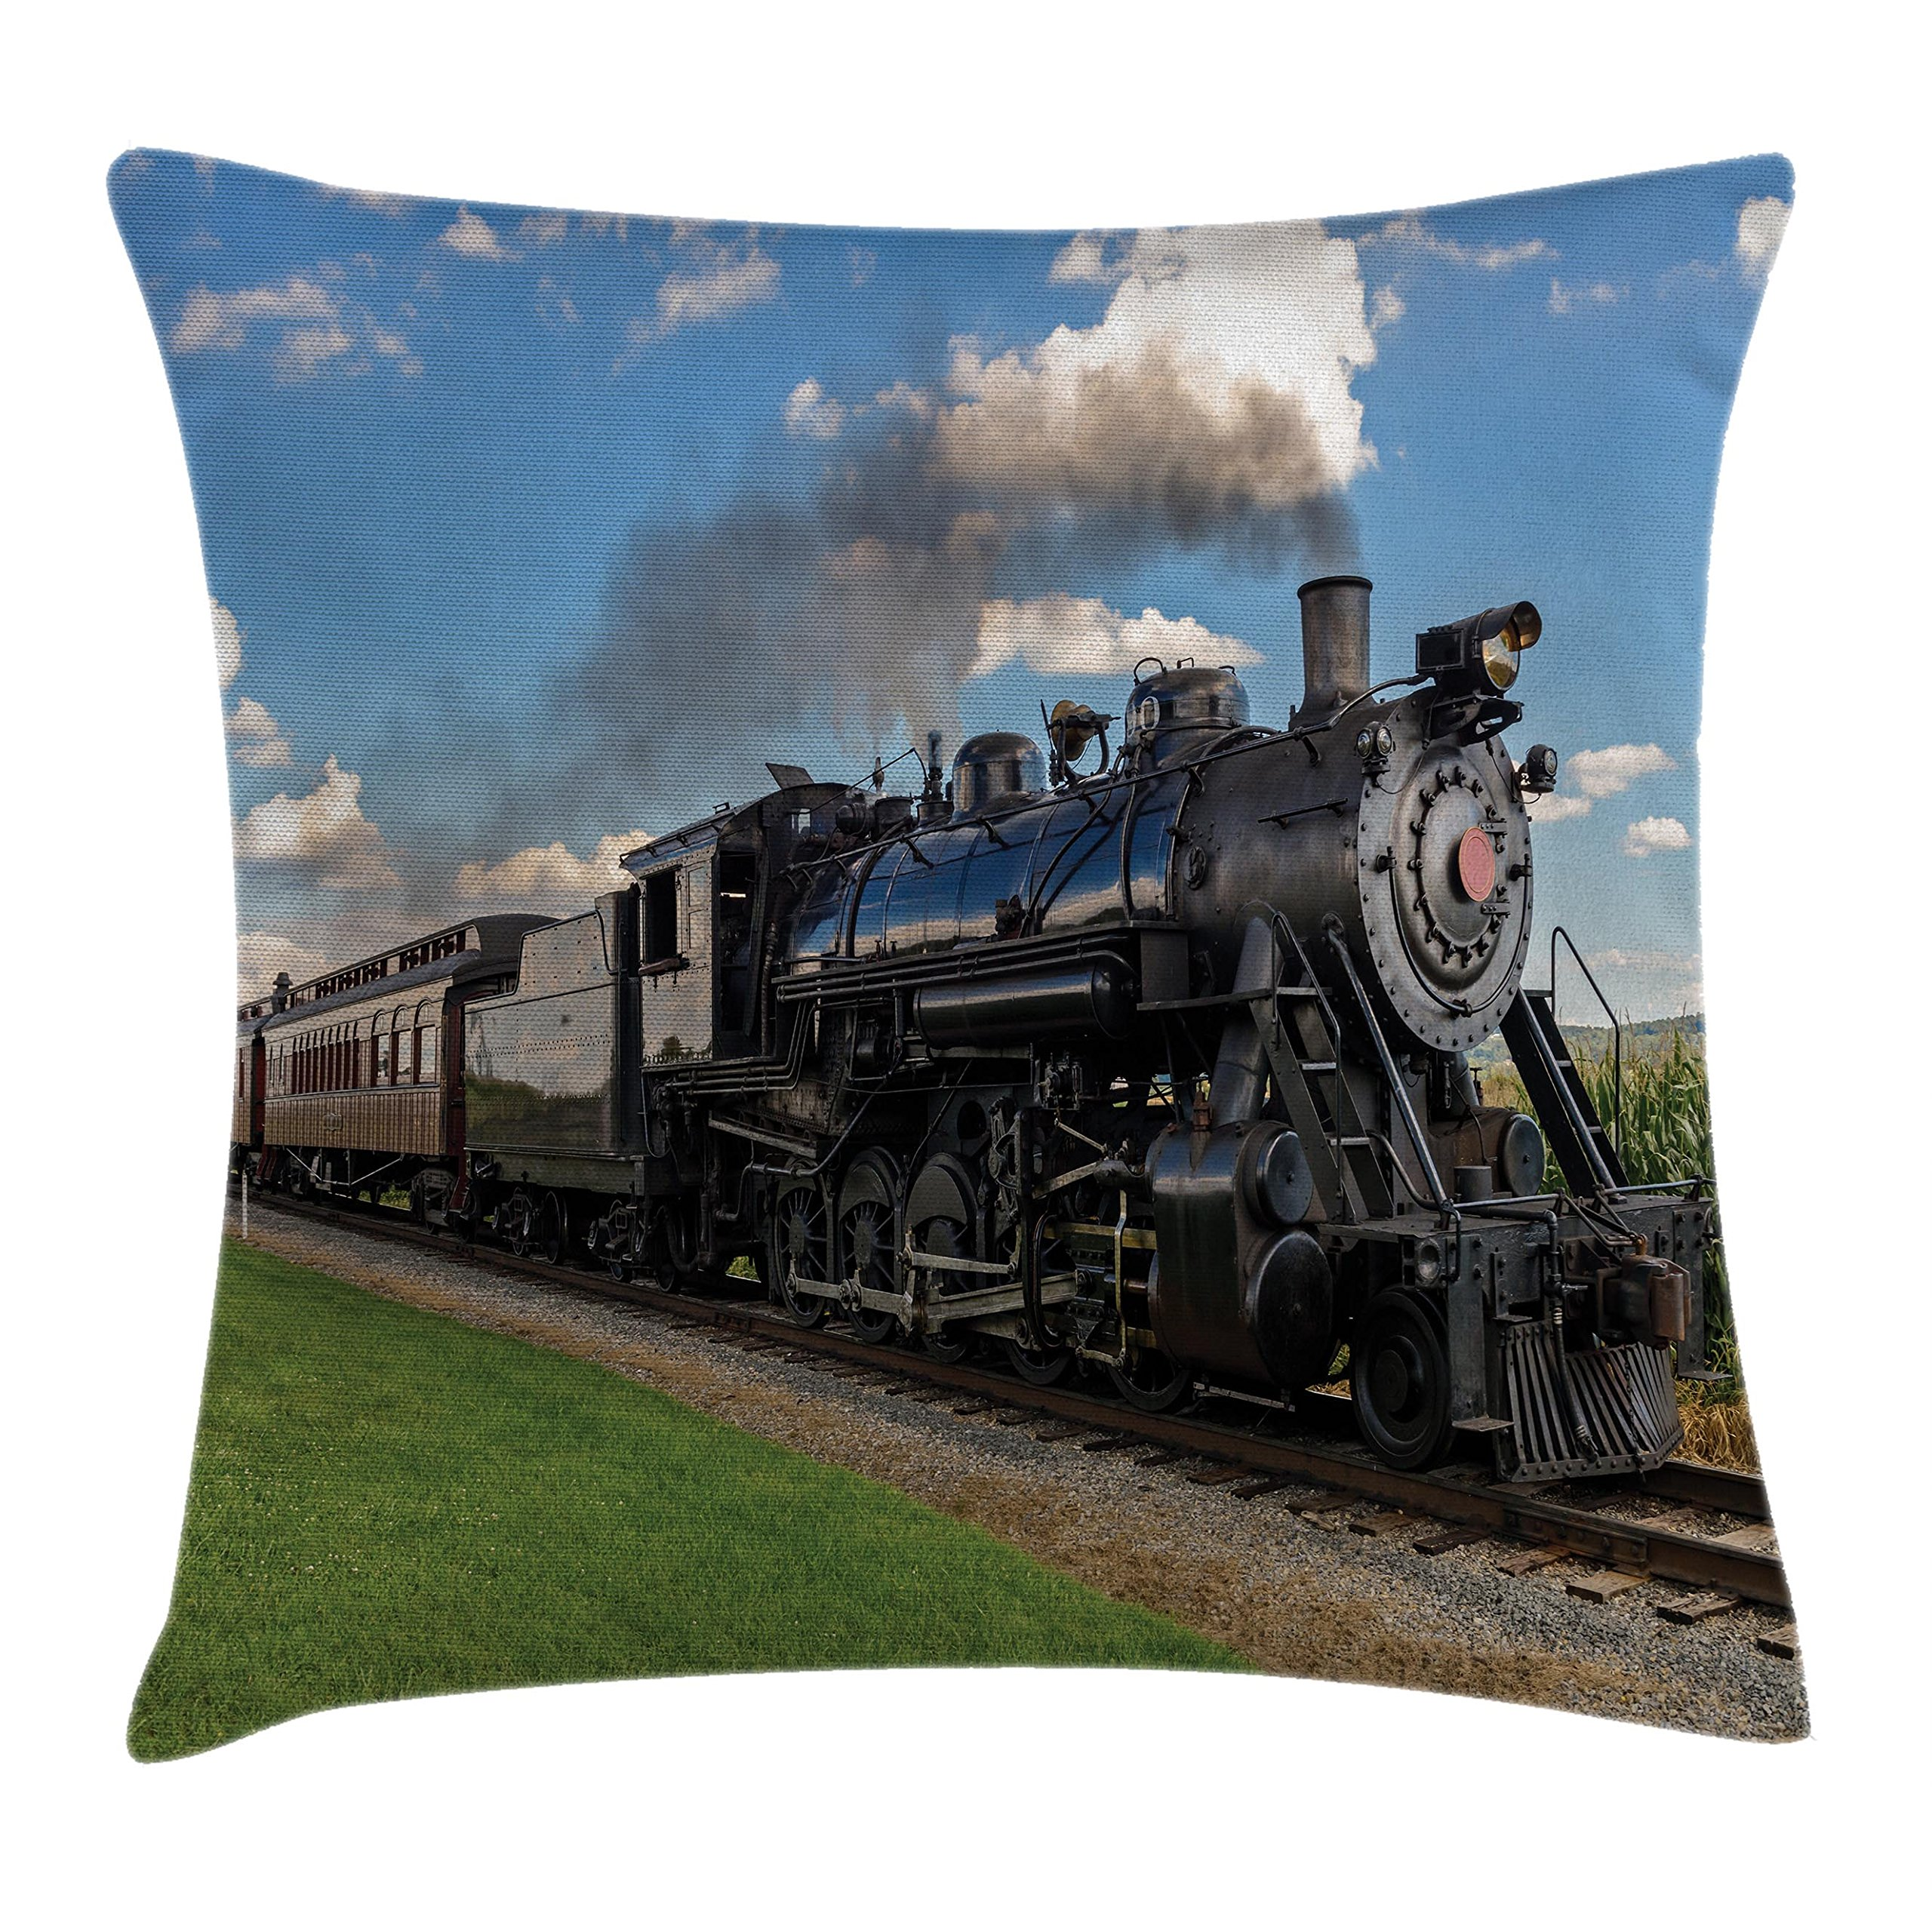 Ambesonne Steam Engine Throw Pillow Cushion Cover, Vintage Locomotive in Countryside Scenery Green Grass Puff Train Picture, Decorative Square Accent Pillow Case, 40 X 40 Inches, Blue Green Black by Ambesonne (Image #1)